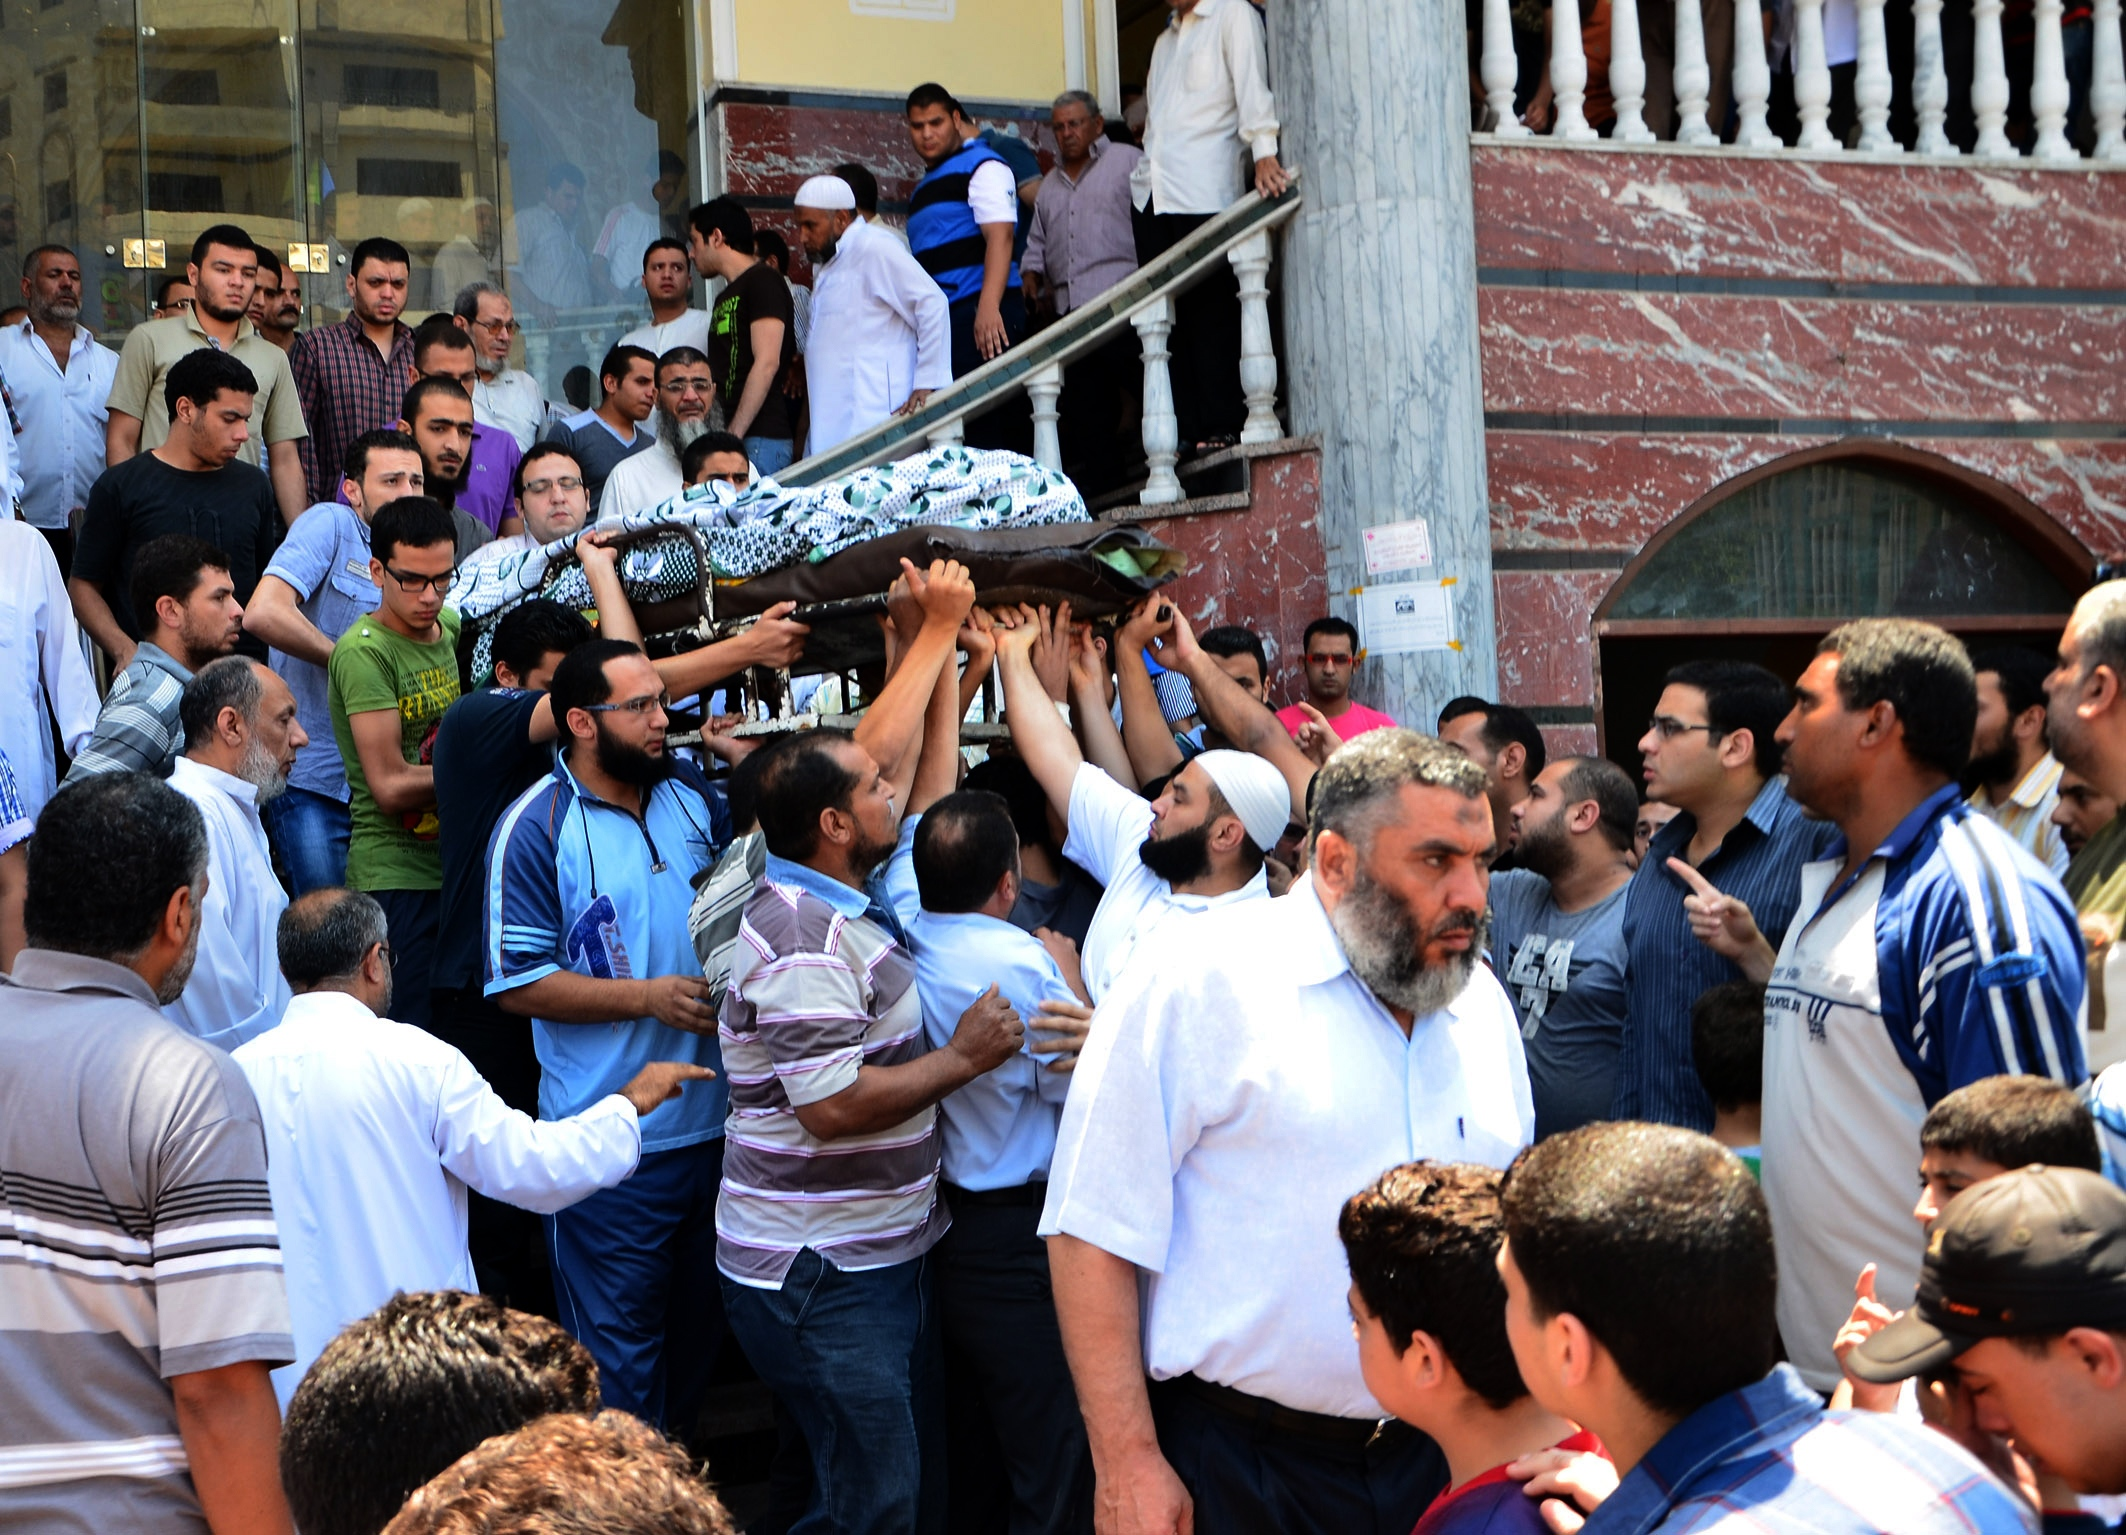 Egyptian people carry the body of a victim of the clashes that broke out between supporters and opponents of Egypt's depose president Mohamed Morsi during a funeral ceremony on July 20, 2013 in the Nile delta city of Mansura. (AFP Photo)